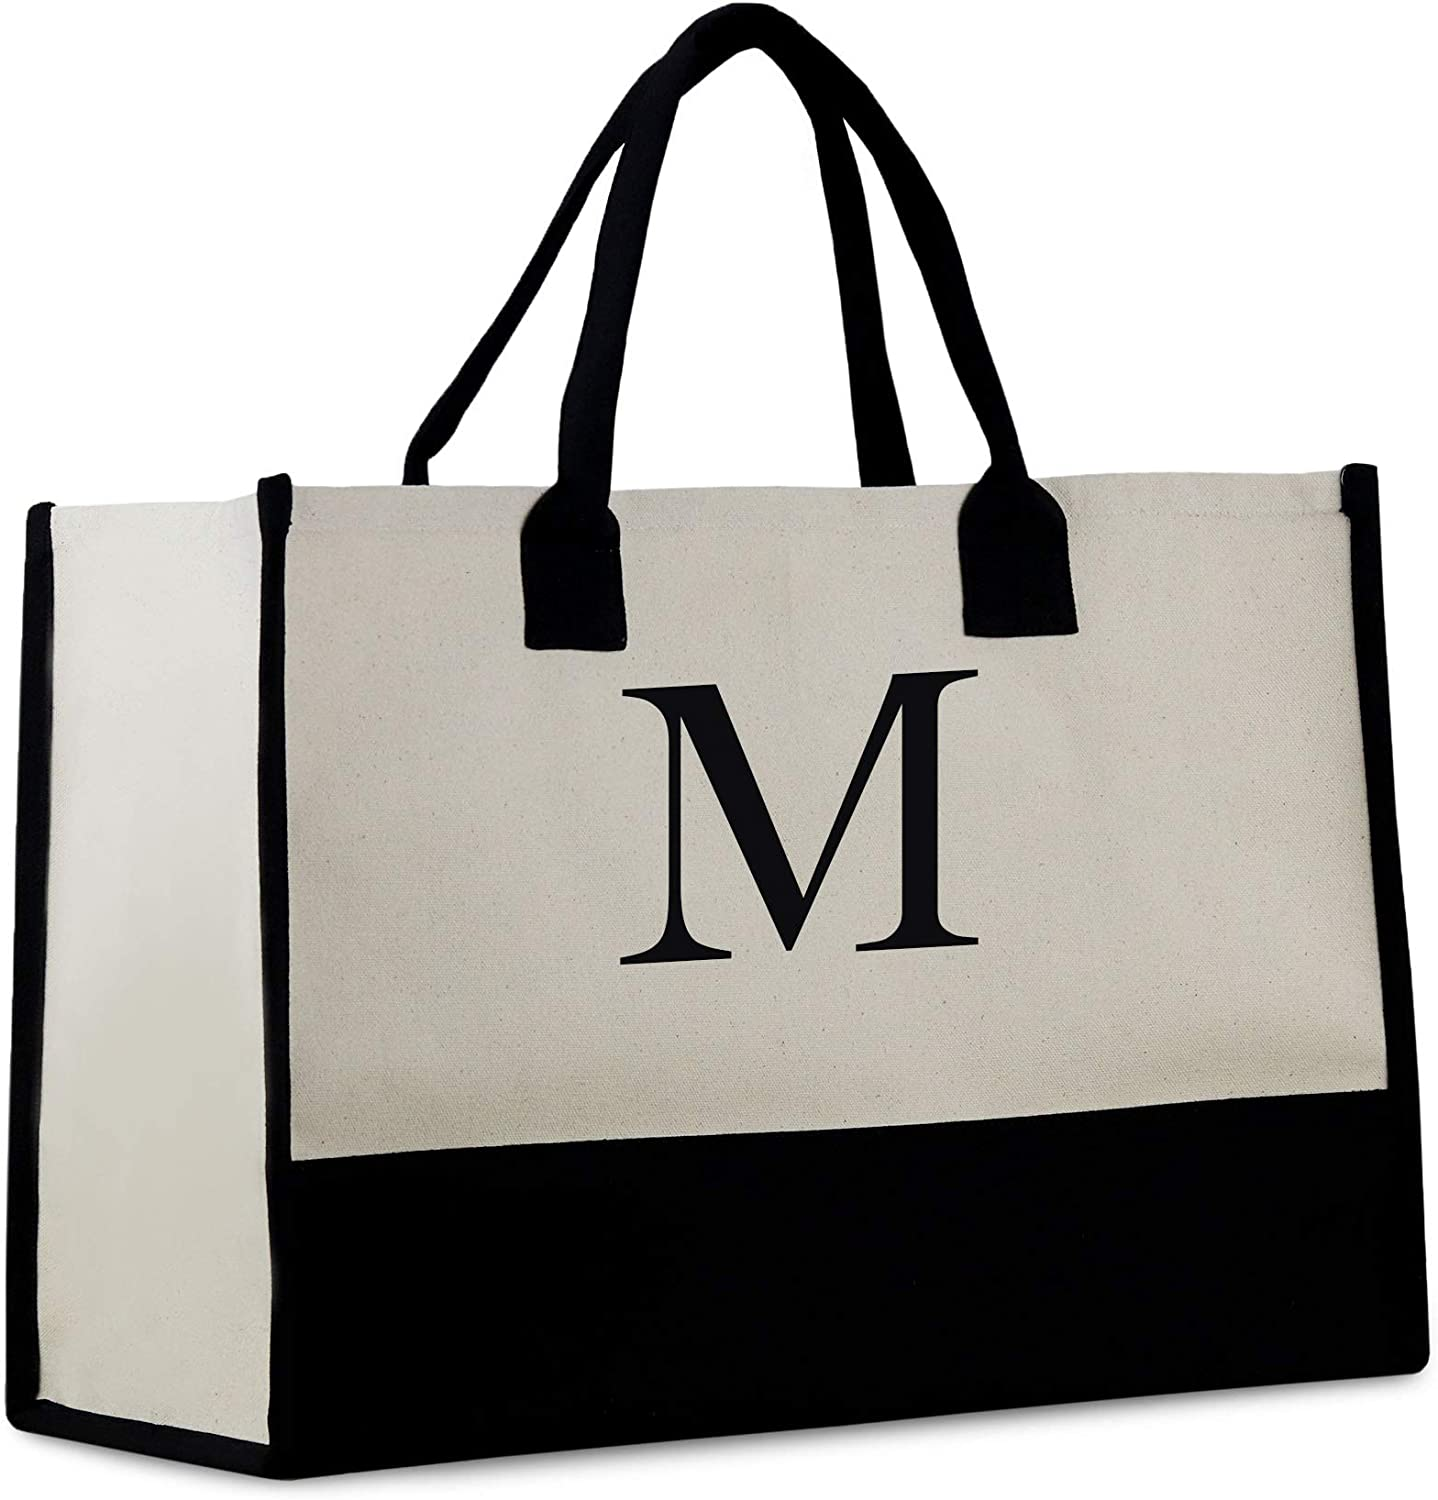 Monogram Tote Bag with 100% Cotton Canvas and a Chic Personalized Monogram Off-white